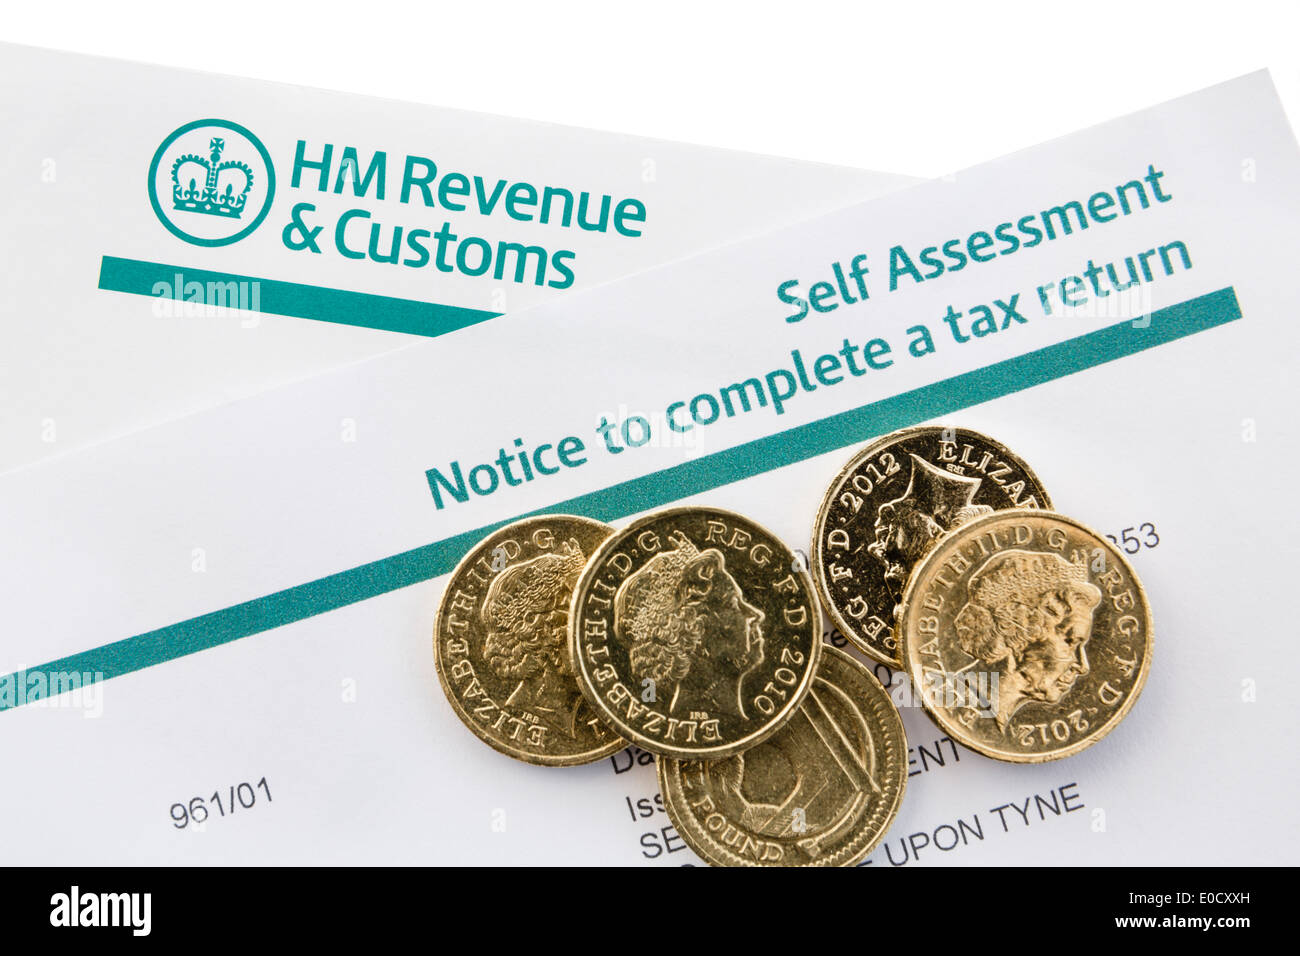 how to get tax return uk